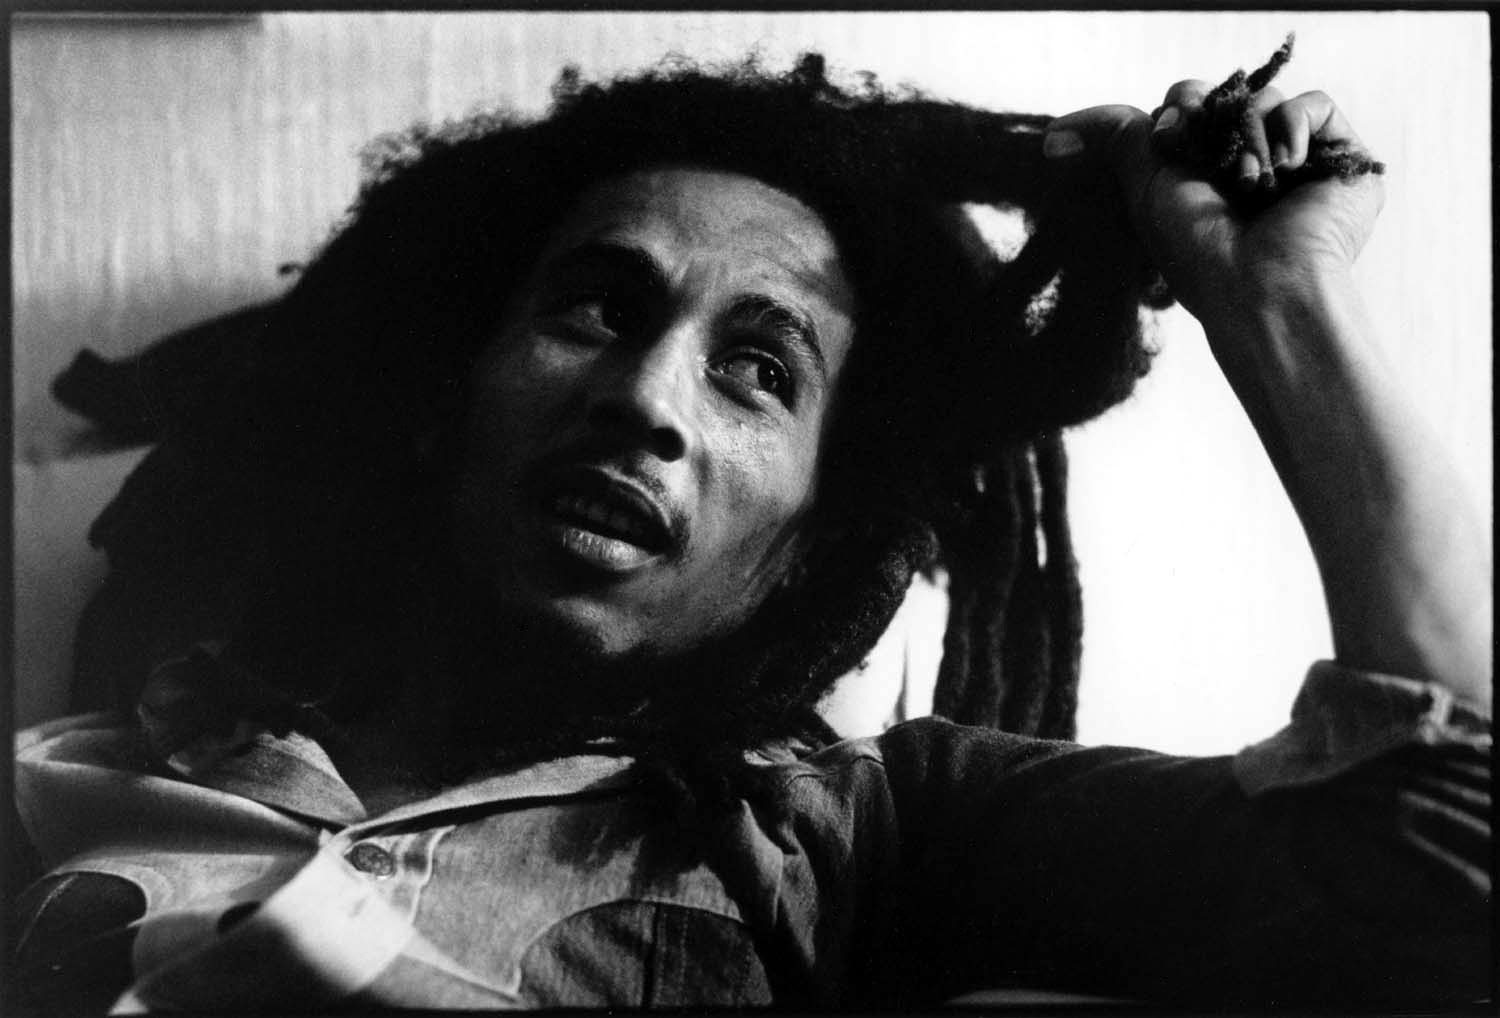 Bob Marley. Photo by David Burnett.